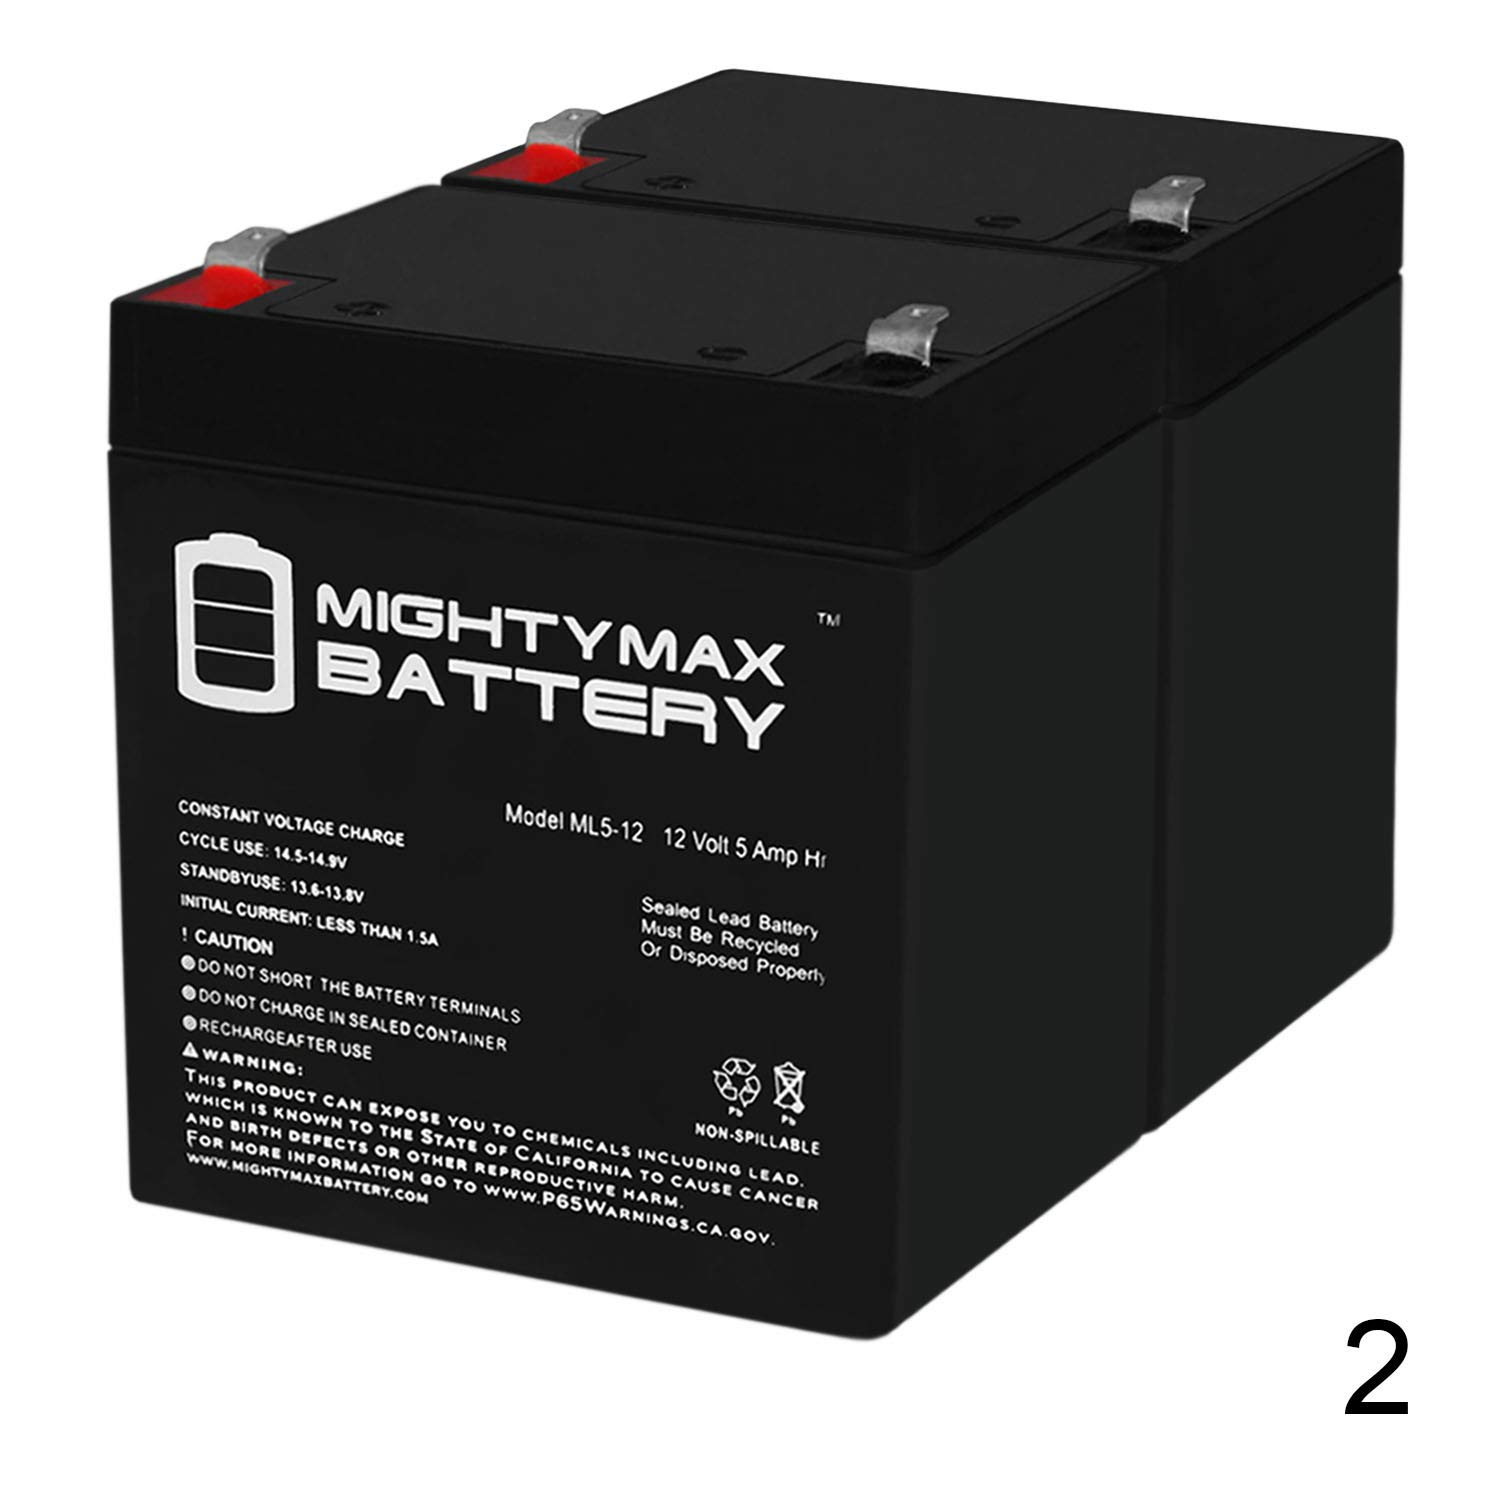 Mighty Max Battery 12V 5AH Battery for Razor E100 E125 E150 E175 Scooter - 2 Pack Brand Product by Mighty Max Battery